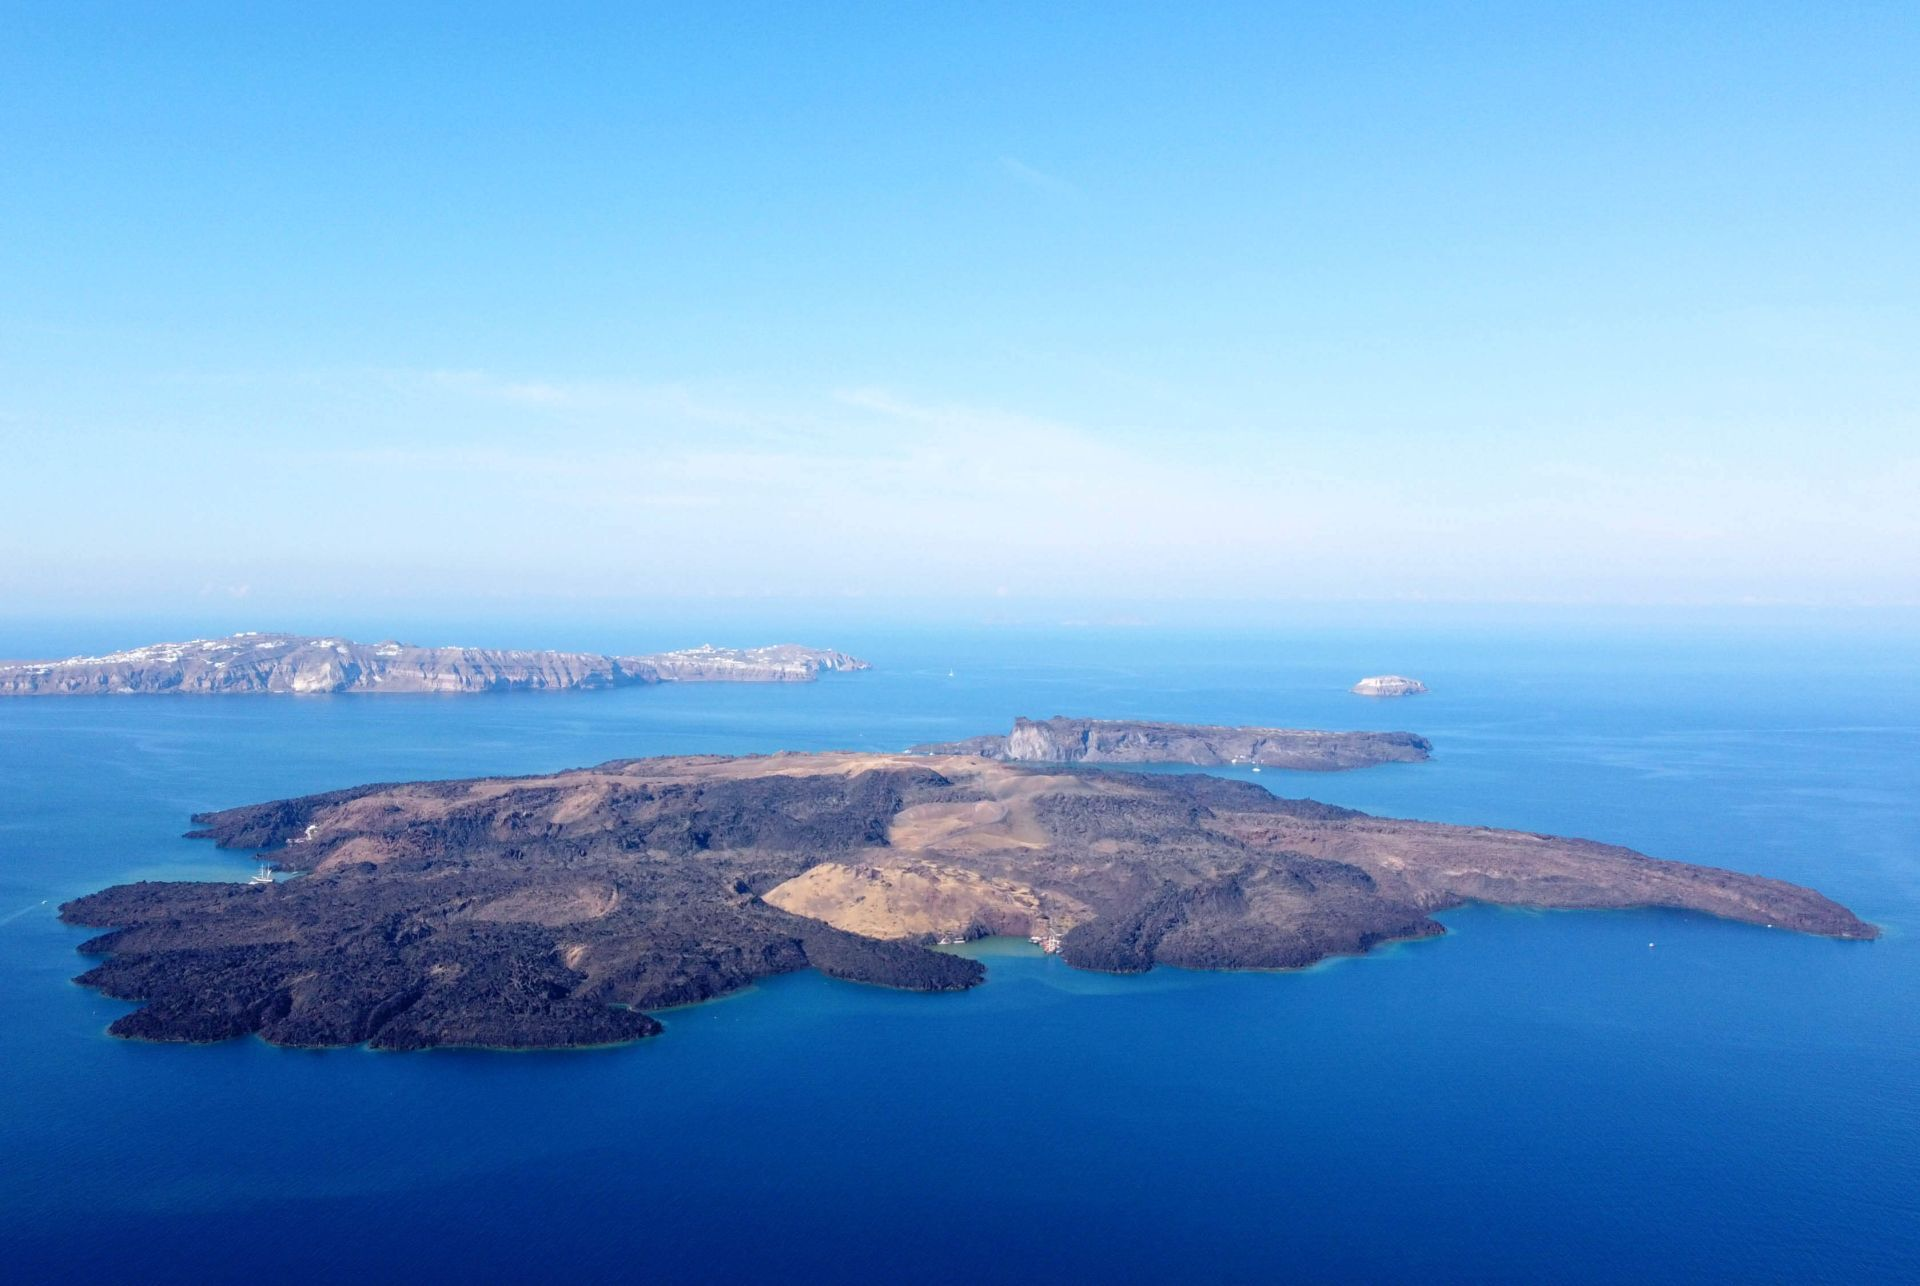 Santorini Island: The active Volcano